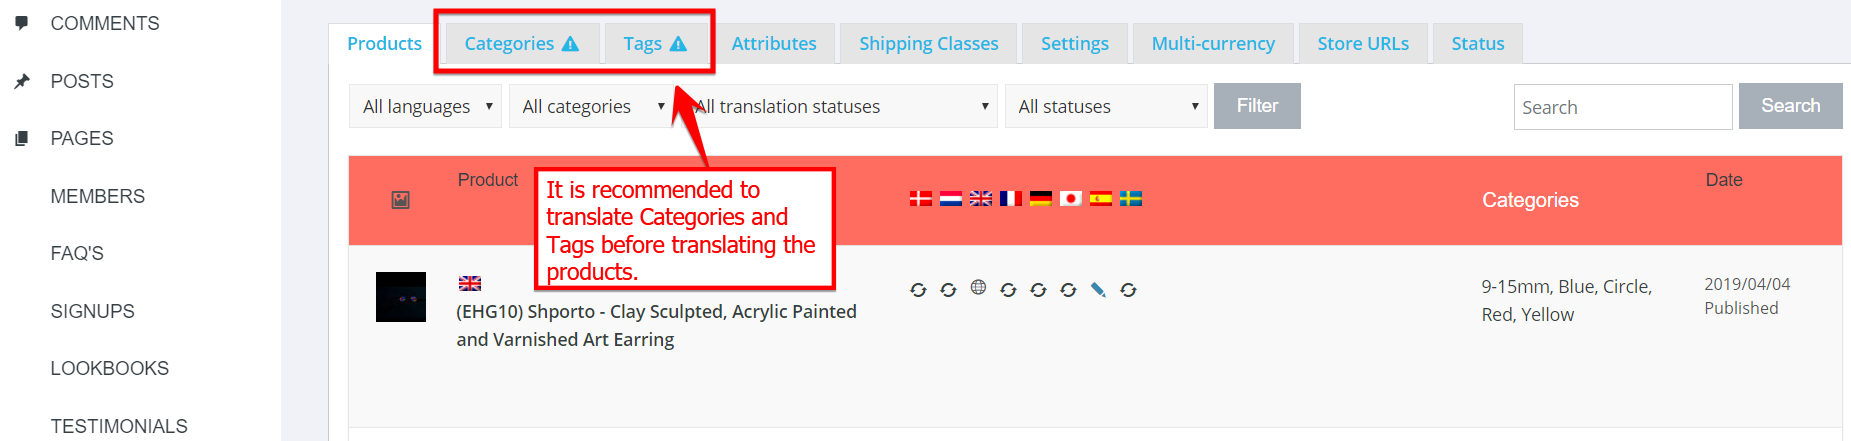 translate-categories-and-tags-before-products.png